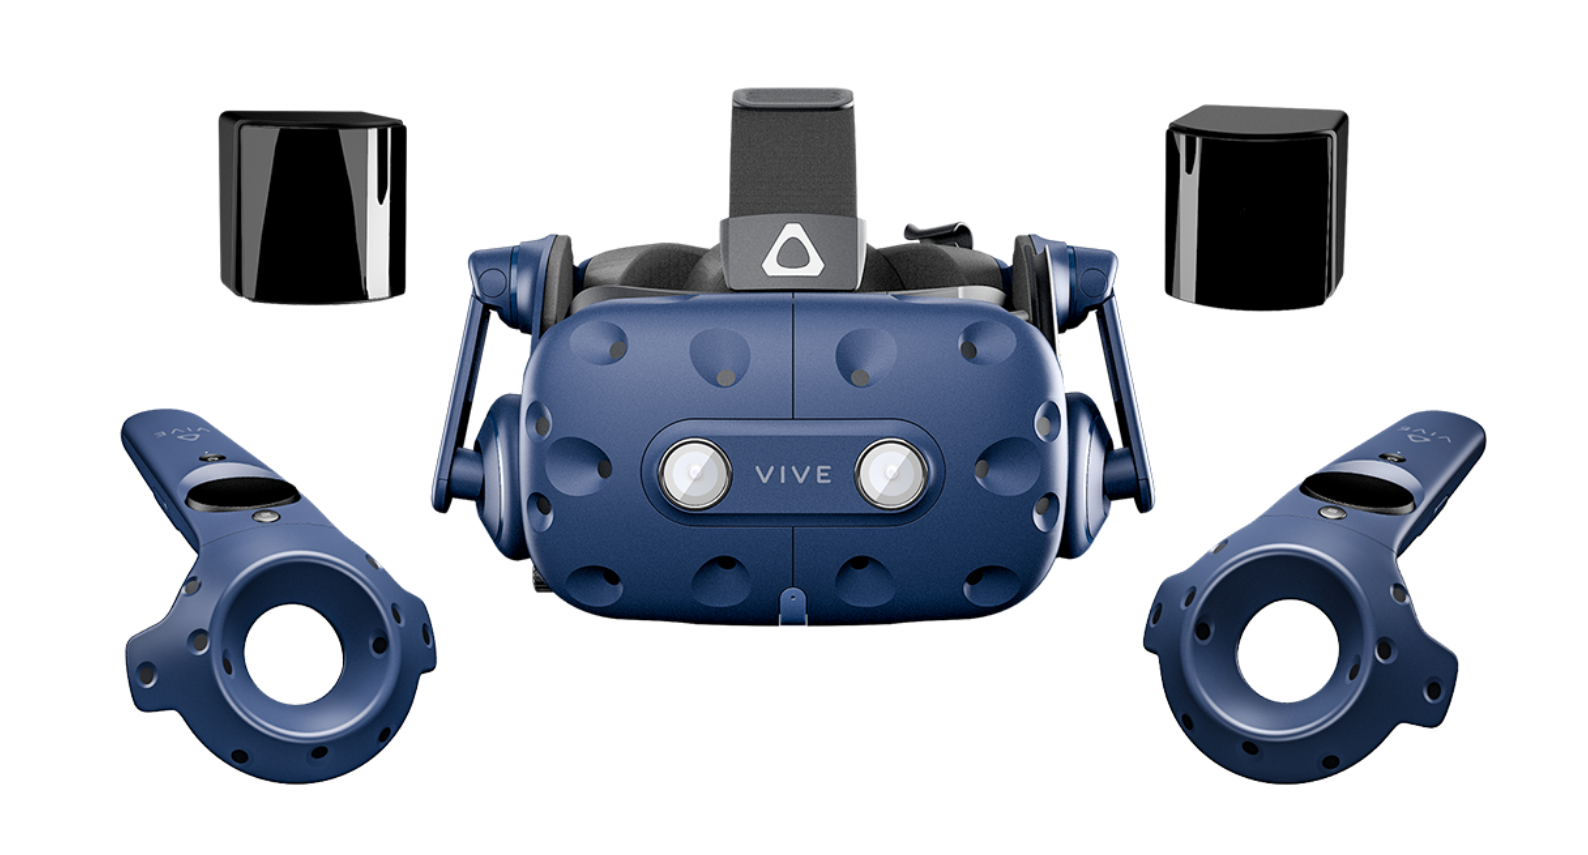 OUR TECHNOLOGY - We only use the best technology in the game. With the all-new Vive Pro we welcome you to the next generation of VR. Equipped with a fully wireless setup, VIVE Pro offers next level immersion - ideal for creating multi-player experiences without disrupting one another.